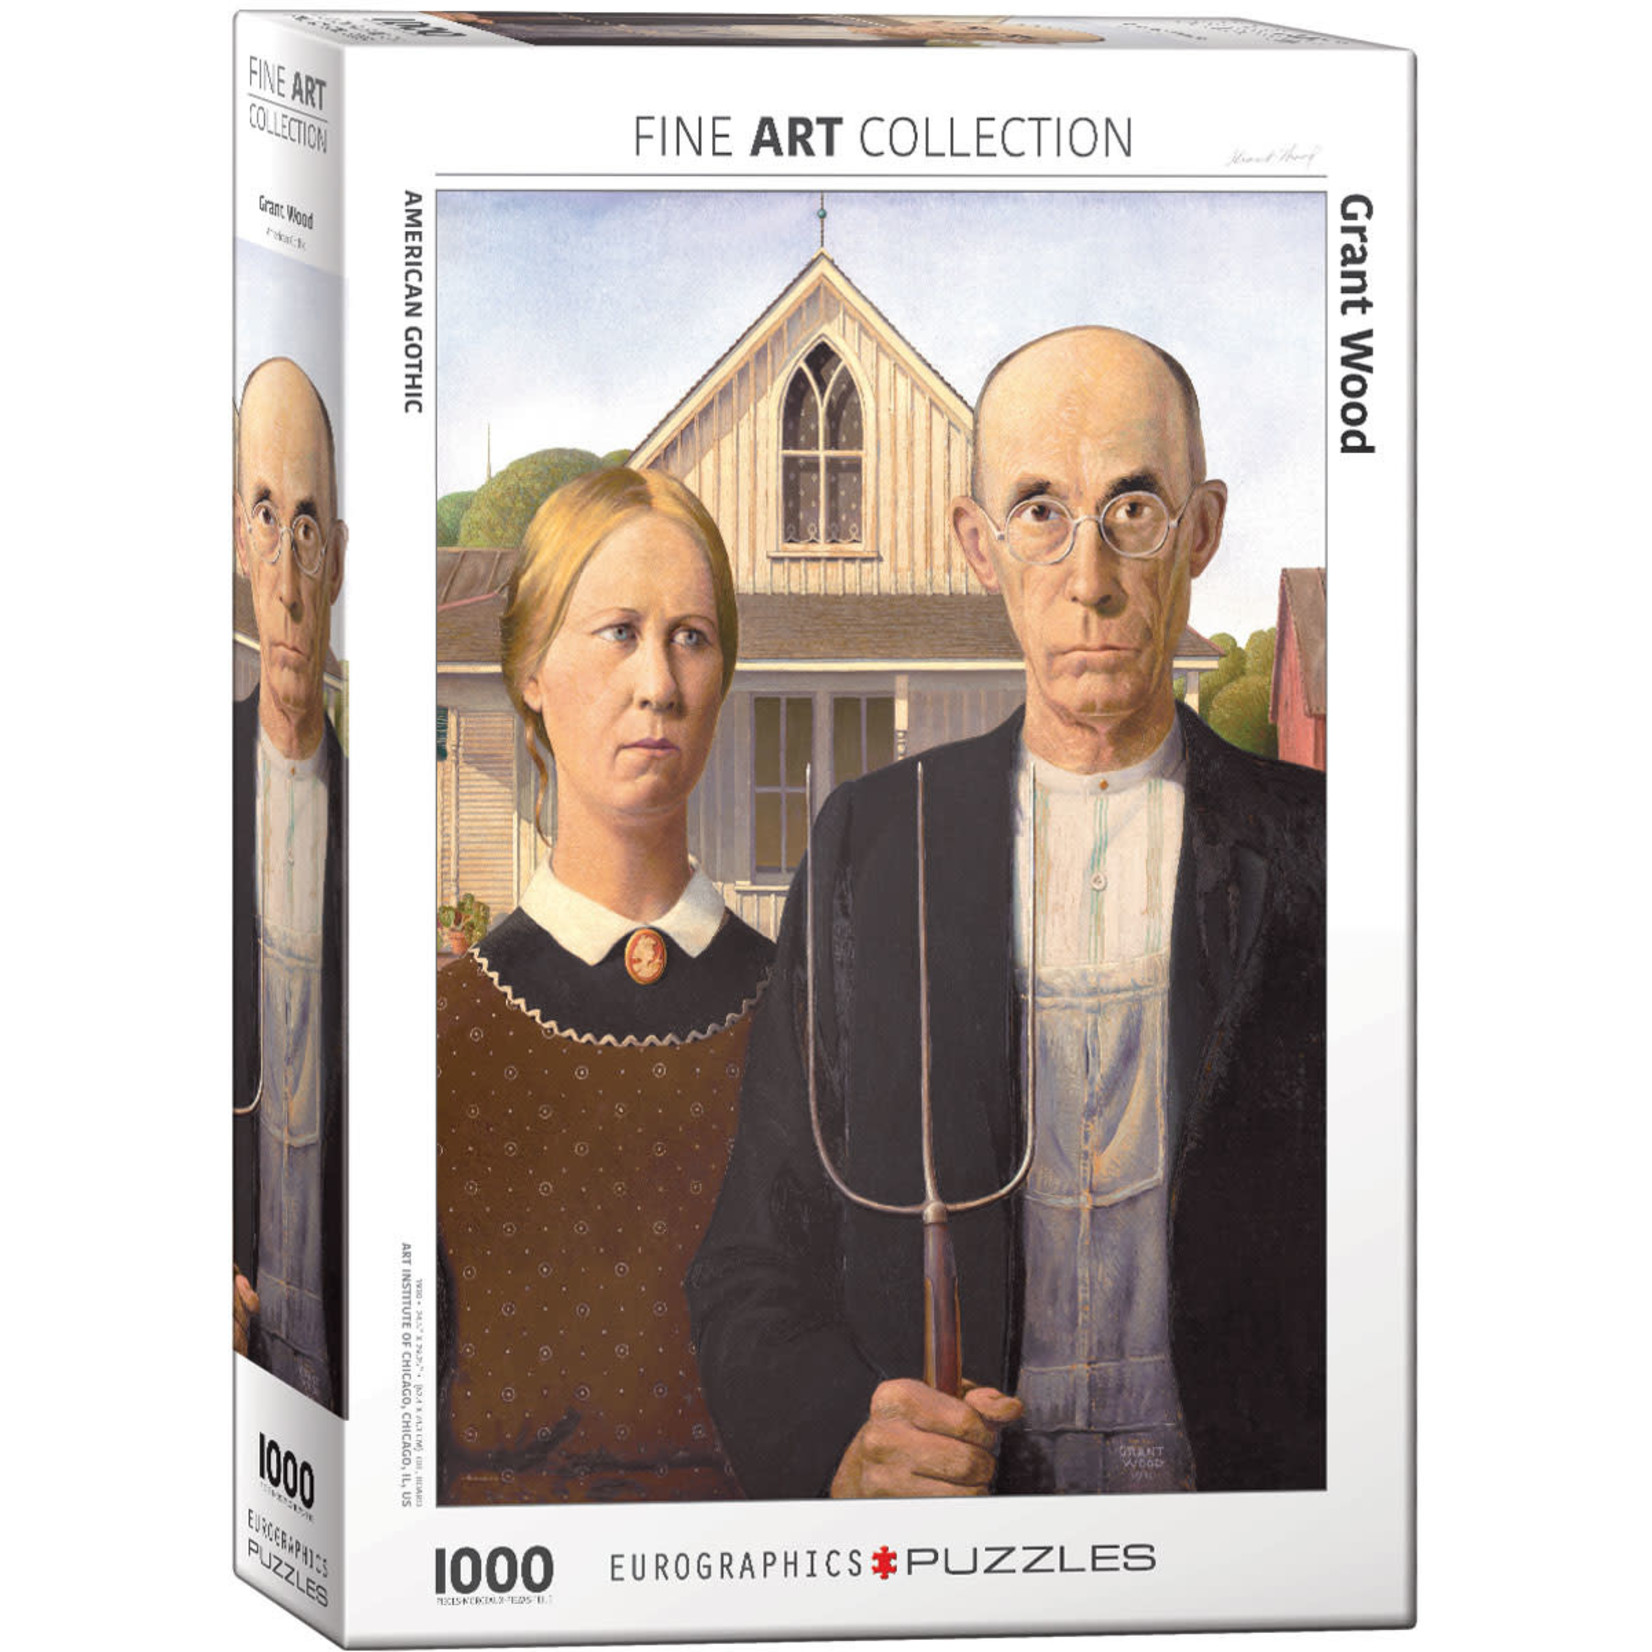 Eurographics Eurographics Puzzle: American Gothic by Grant Wood - 1000pc